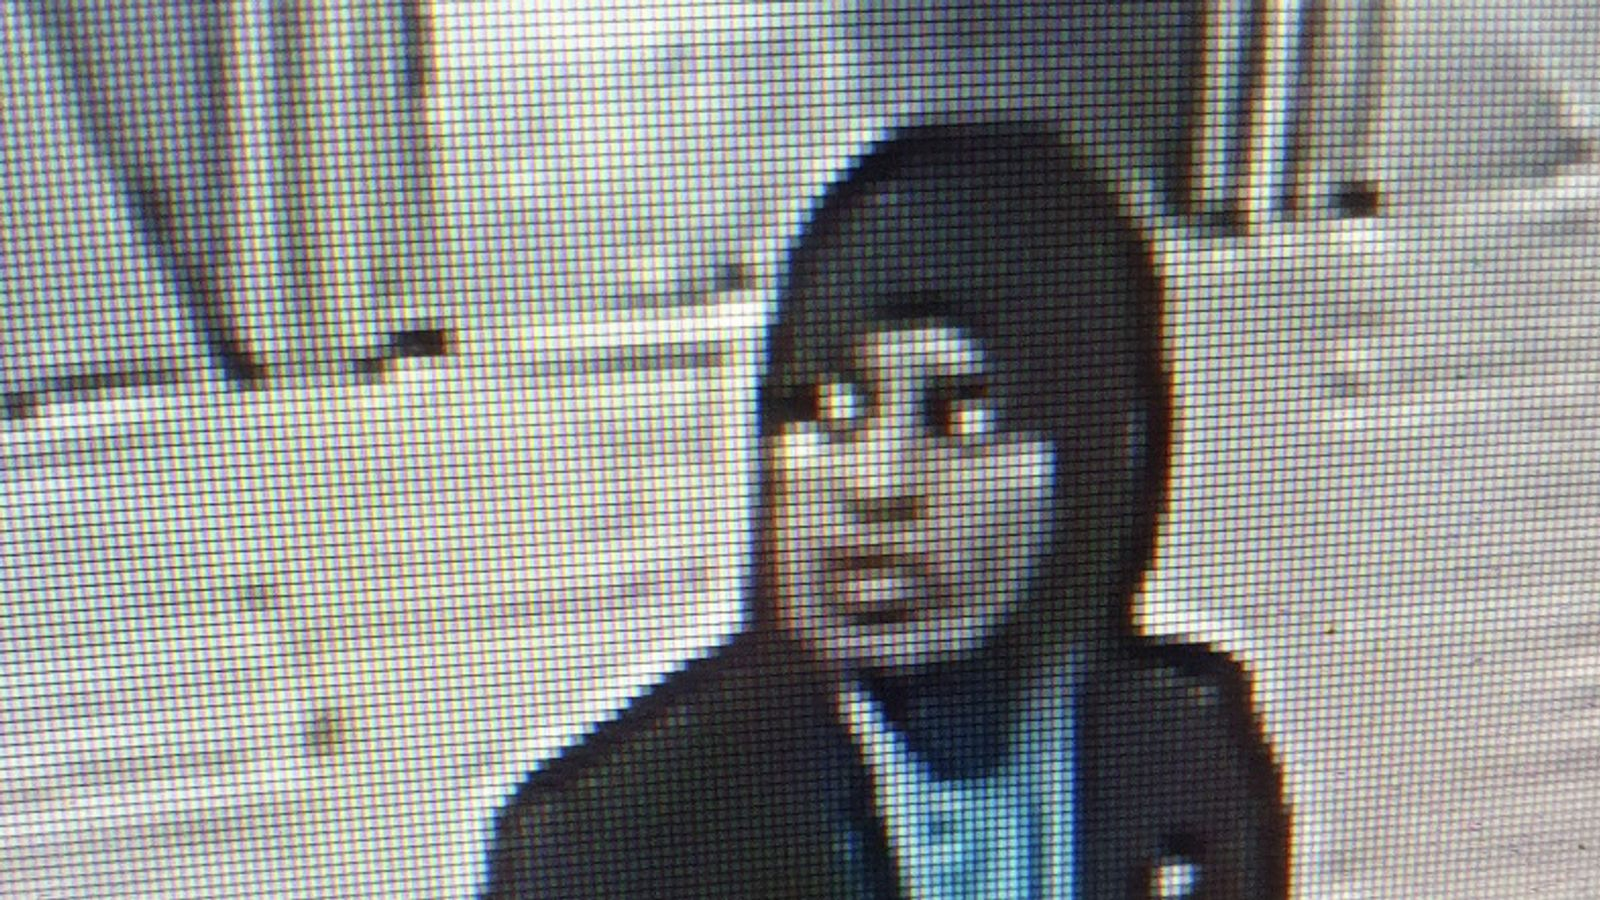 Fatuma Kadir: Girl who went missing from her home in Bolton found in London